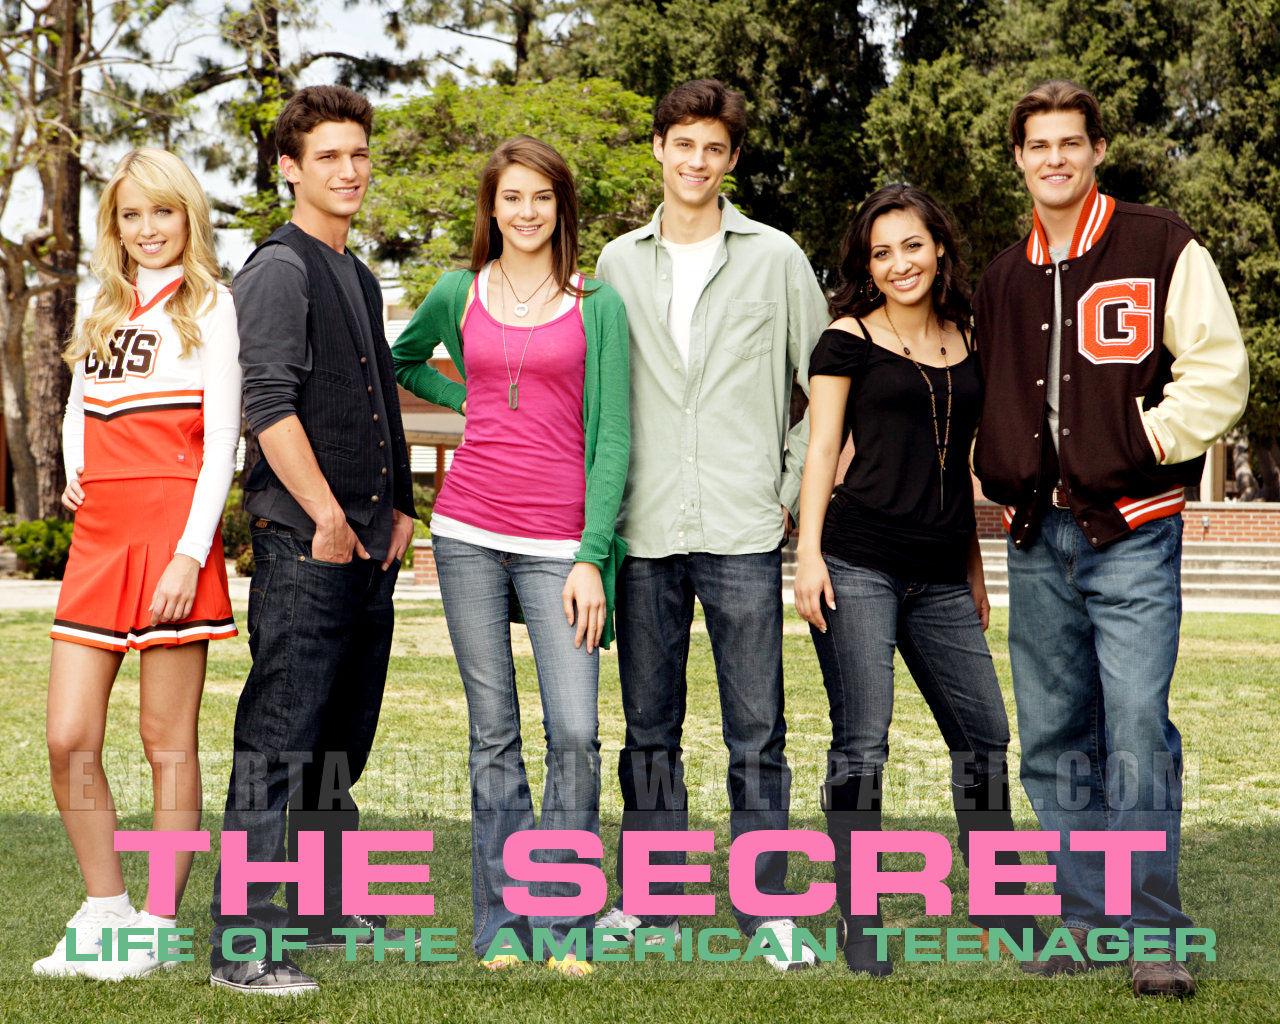 Best 72 The Secret Life of the American Teenager Wallpaper on 1280x1024